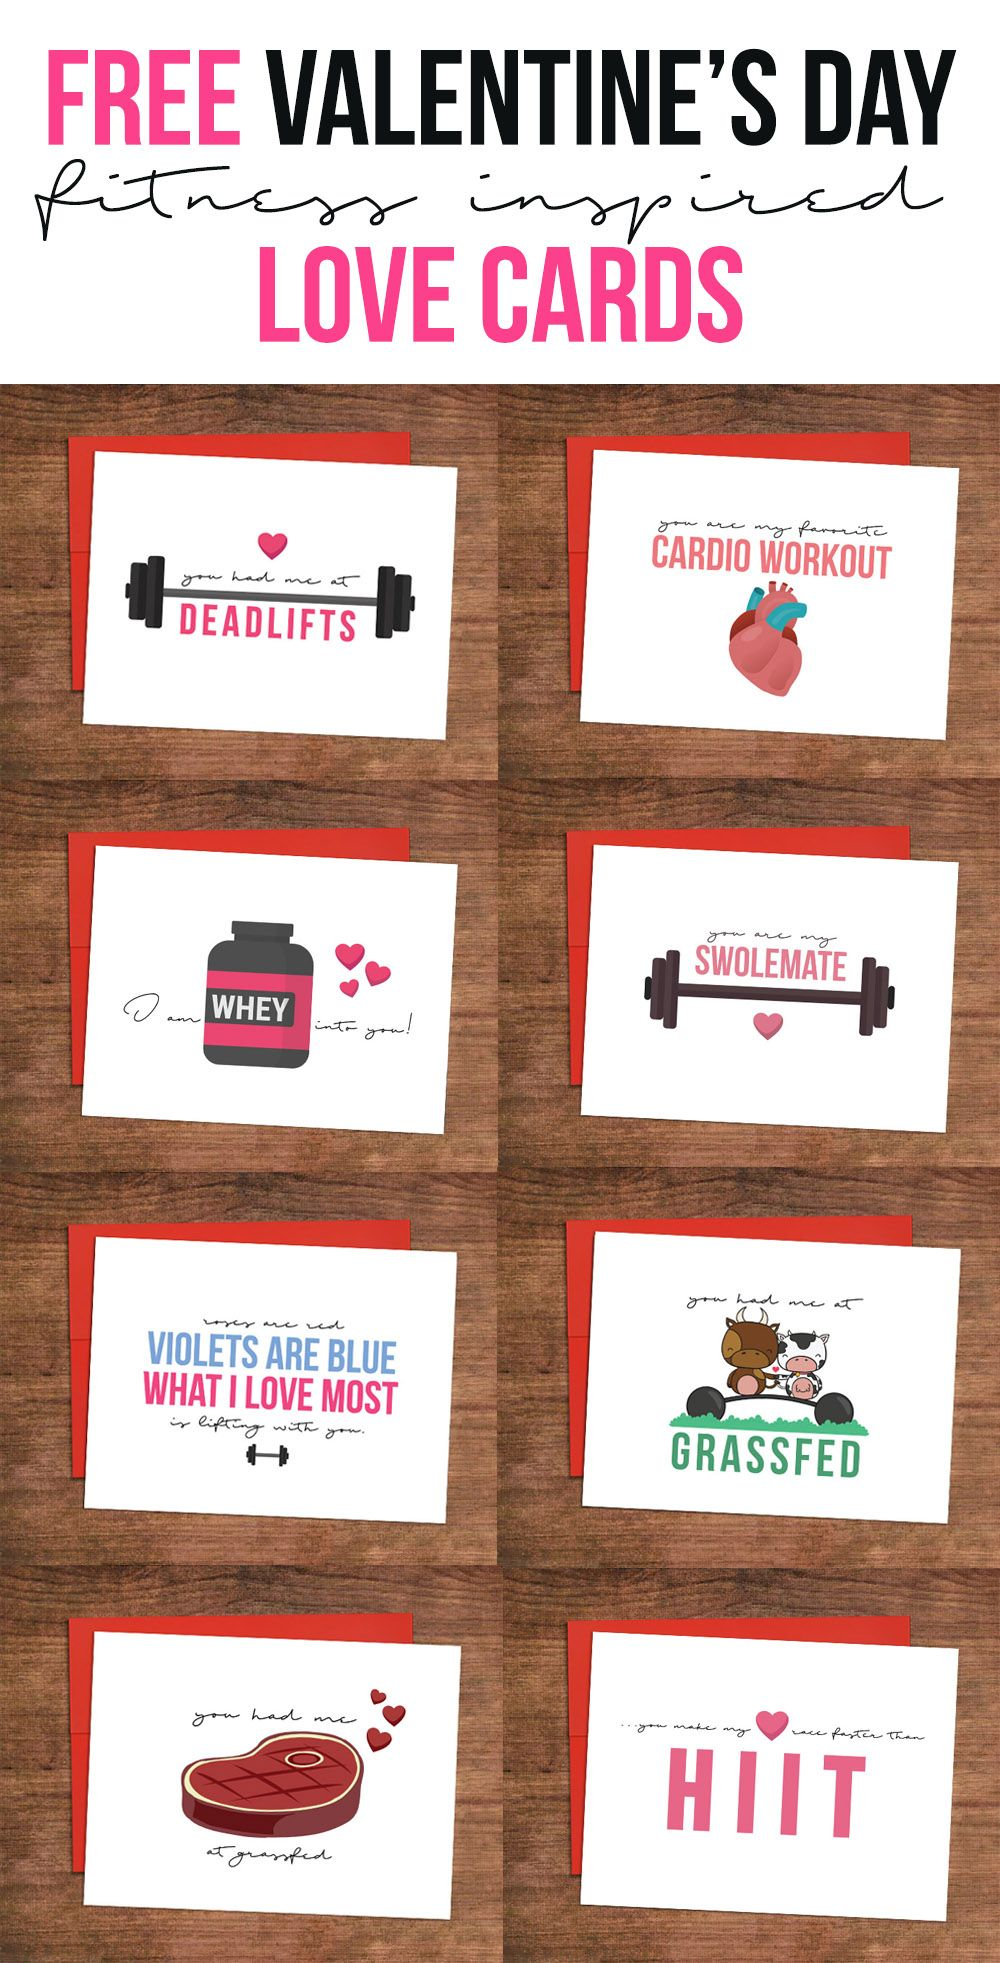 Fitness Valentines Day Cards 10 Funny Valentines Day Cards For Him Fitness Valentines Gifts Funny Valentines Cards Valentines Workout